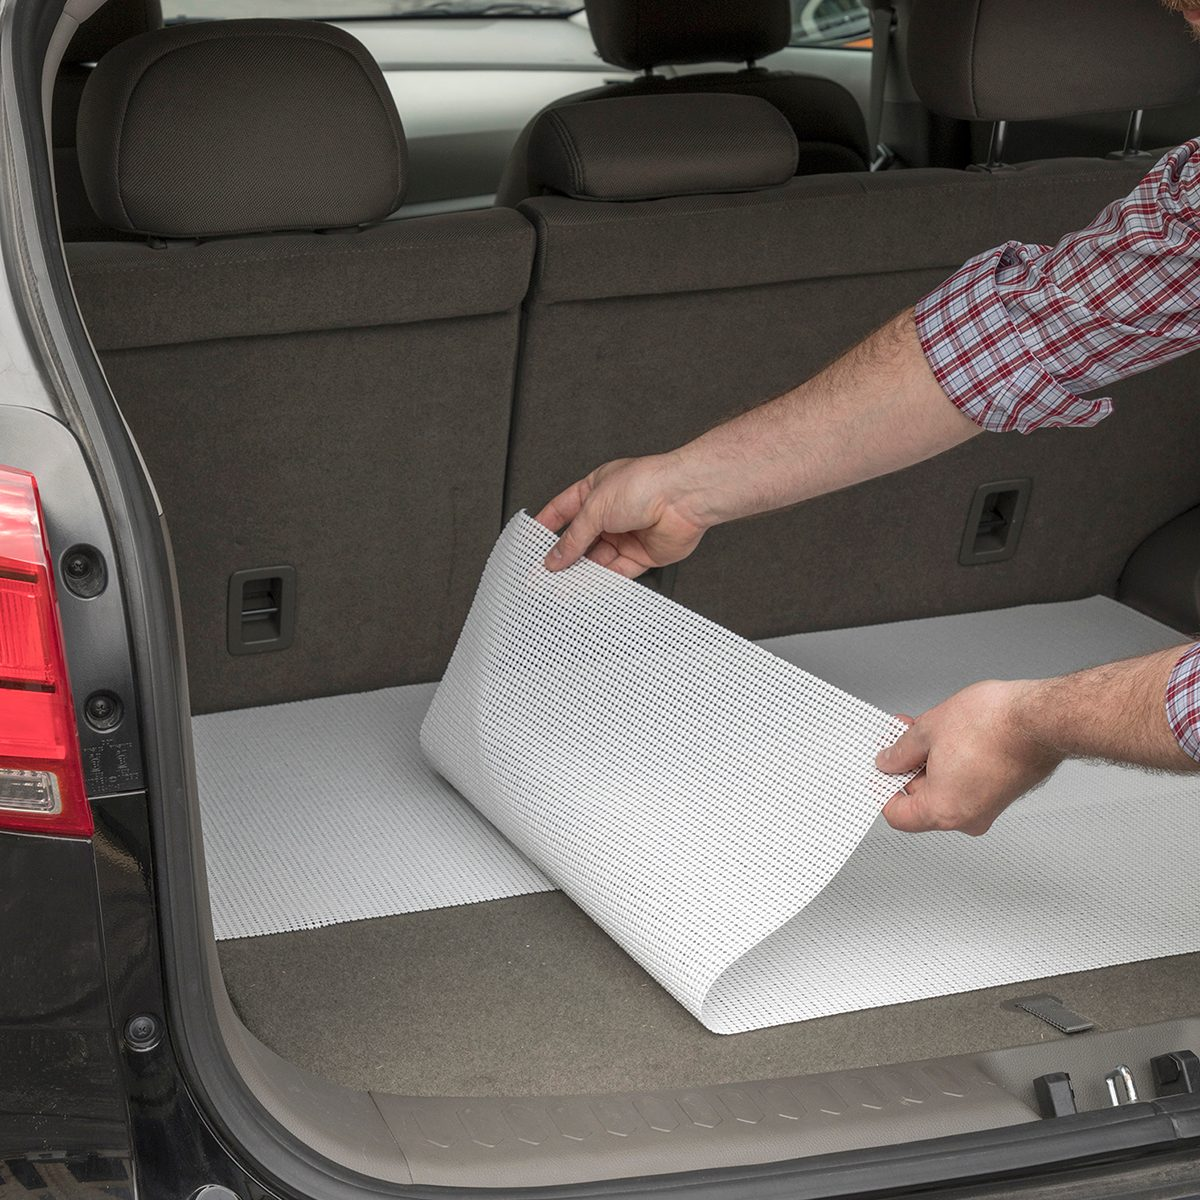 Man lining the trunk of a car with shelf liners